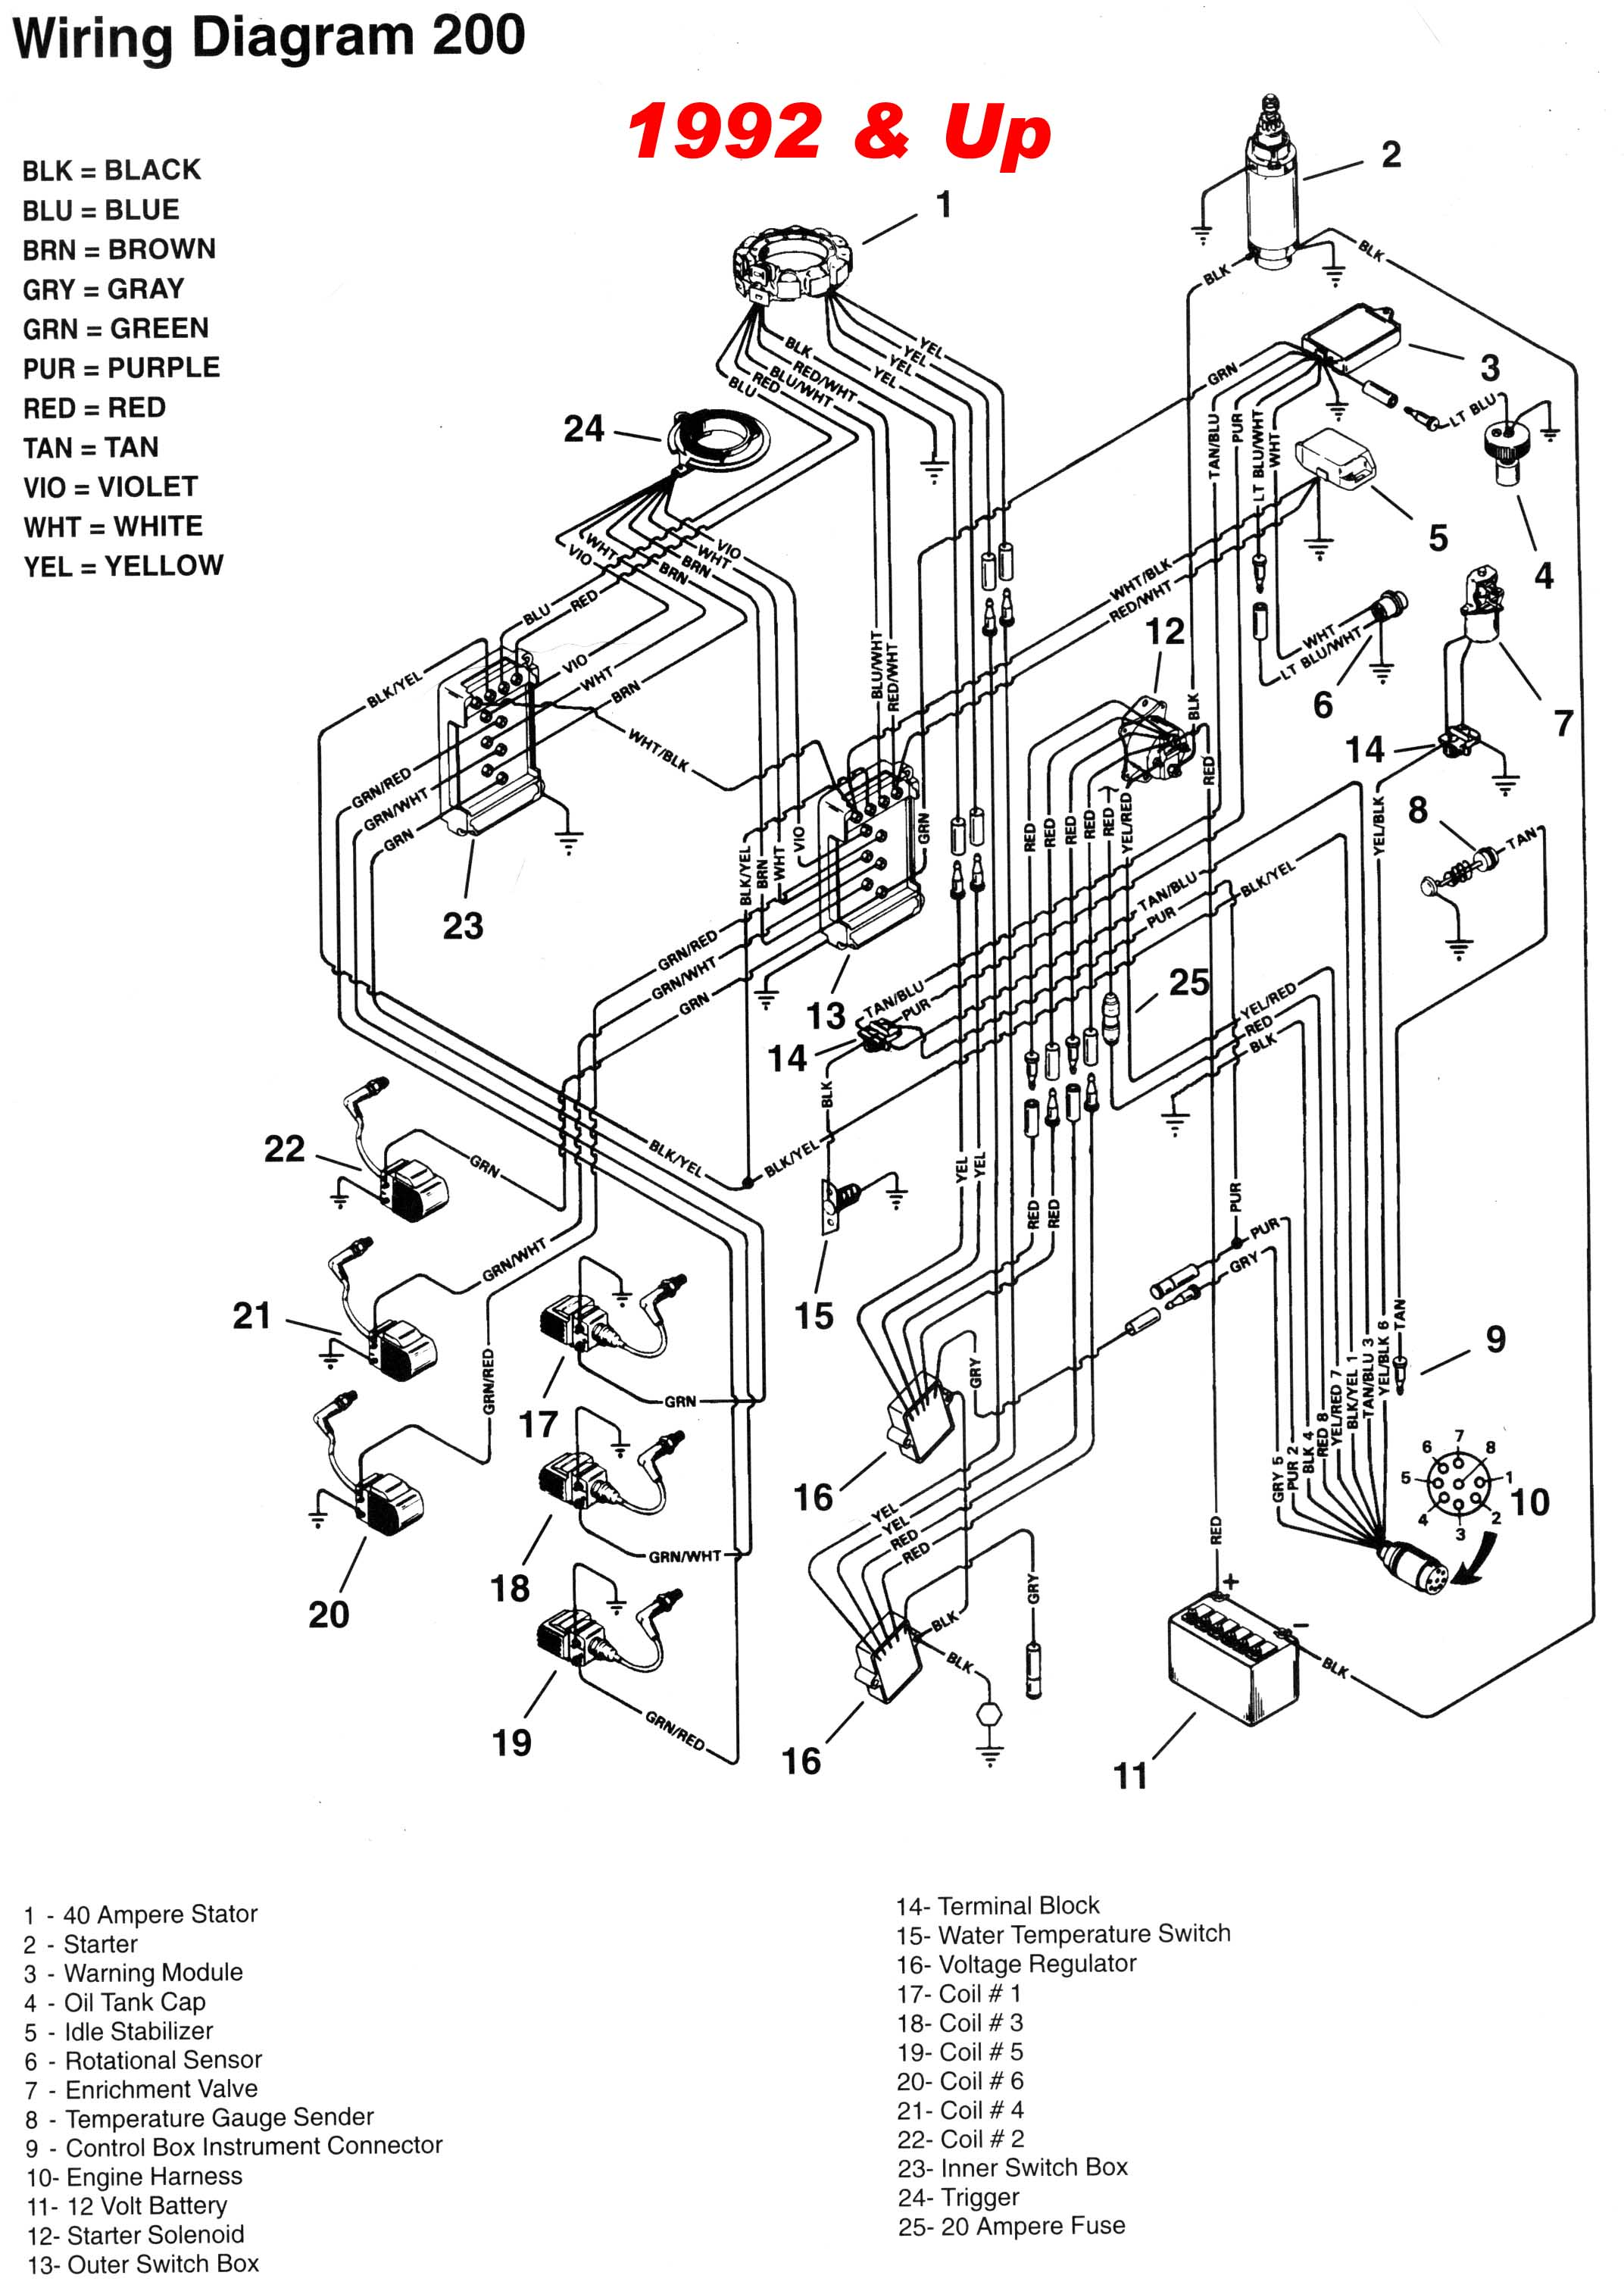 mercury_92up_200_wiring mercury optimax wiring diagram mercury verado wiring diagram  at cita.asia